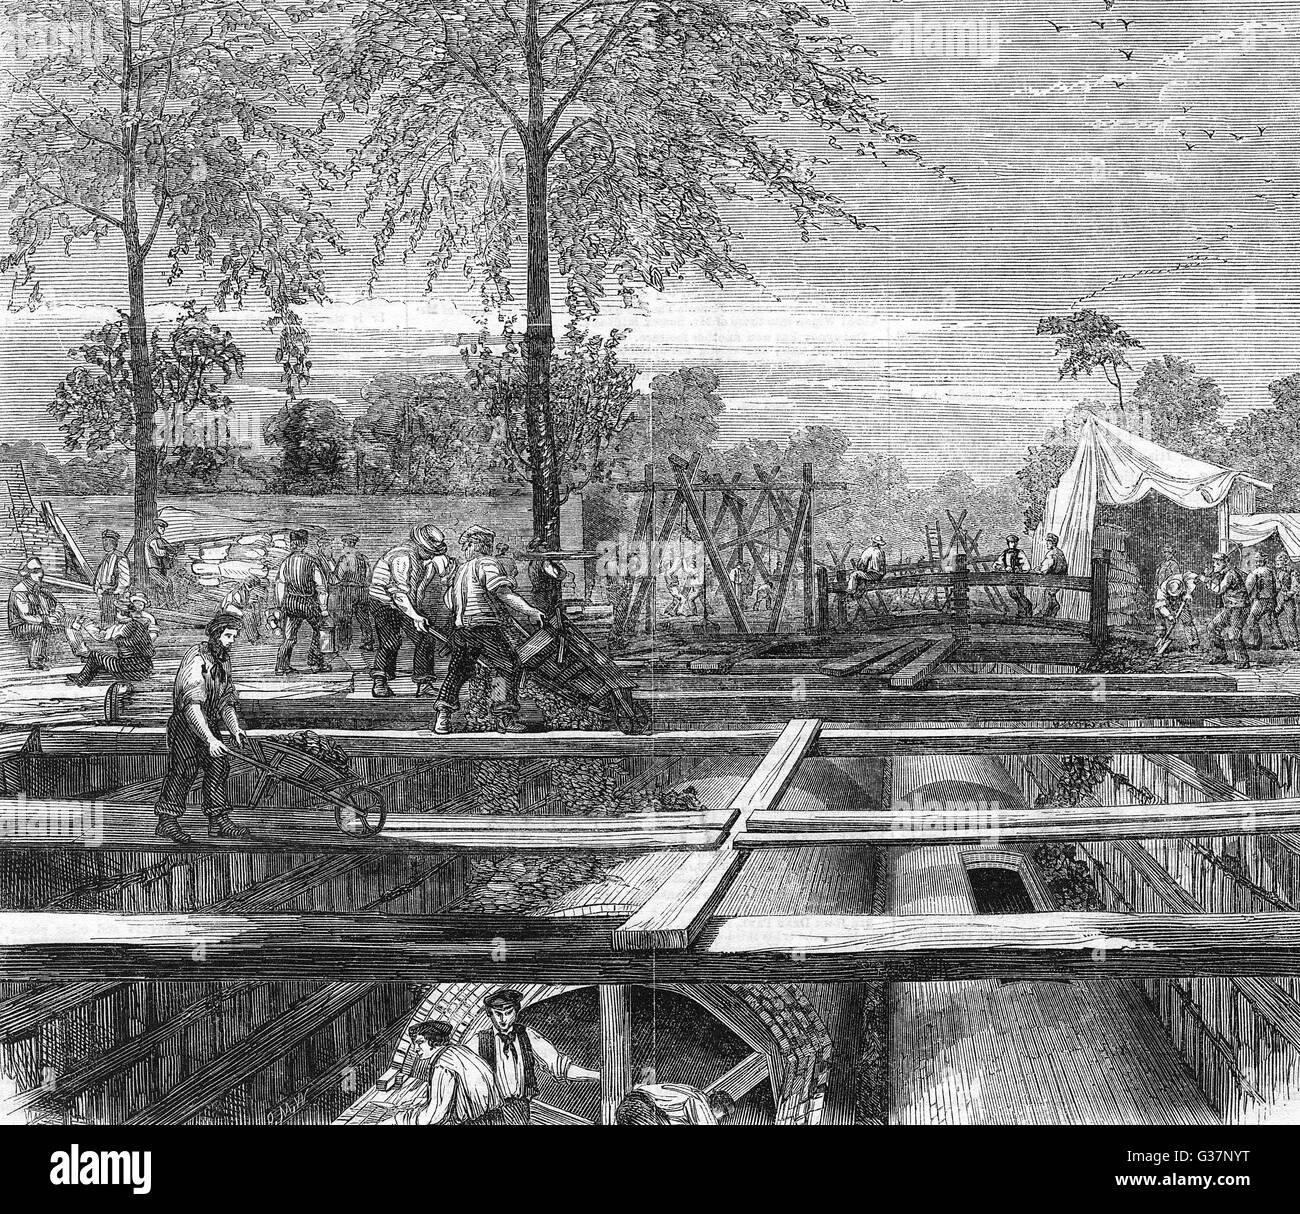 London Metropolitan main drainage works : constructing sewers at New Cross        Date: 1861 - Stock Image